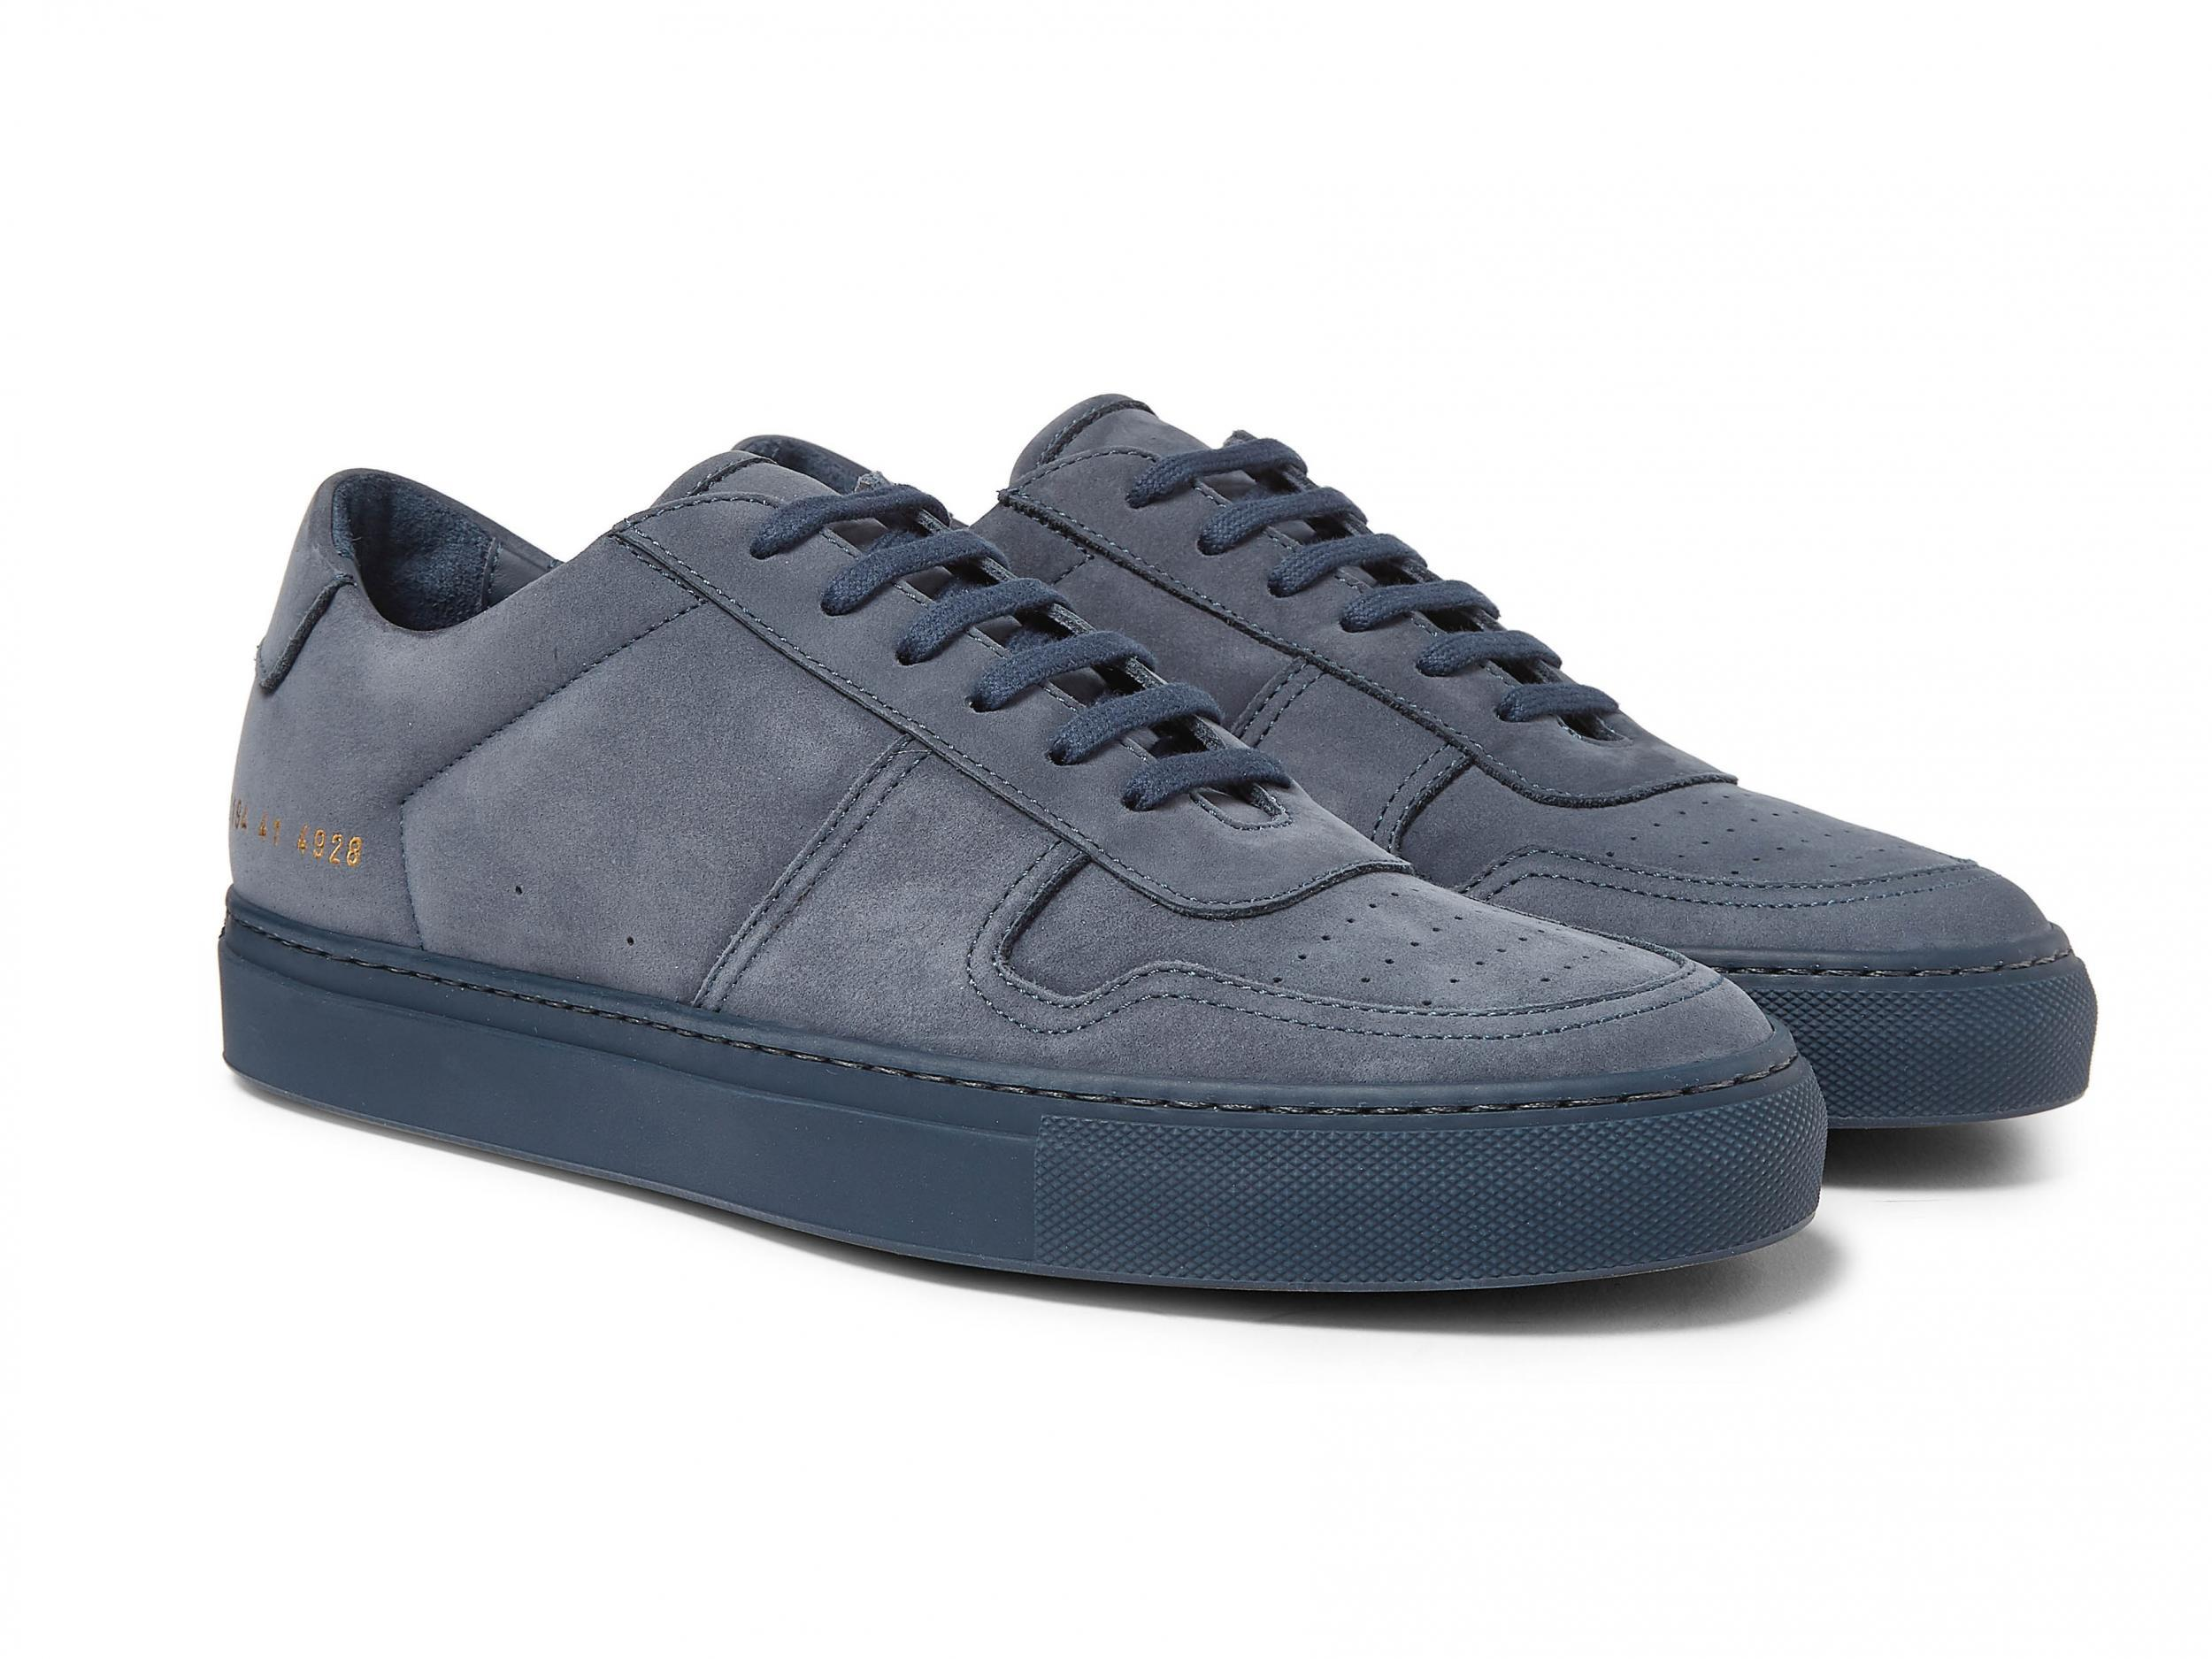 0547bac61 Best men's trainers for all budgets, from high street to designer buys